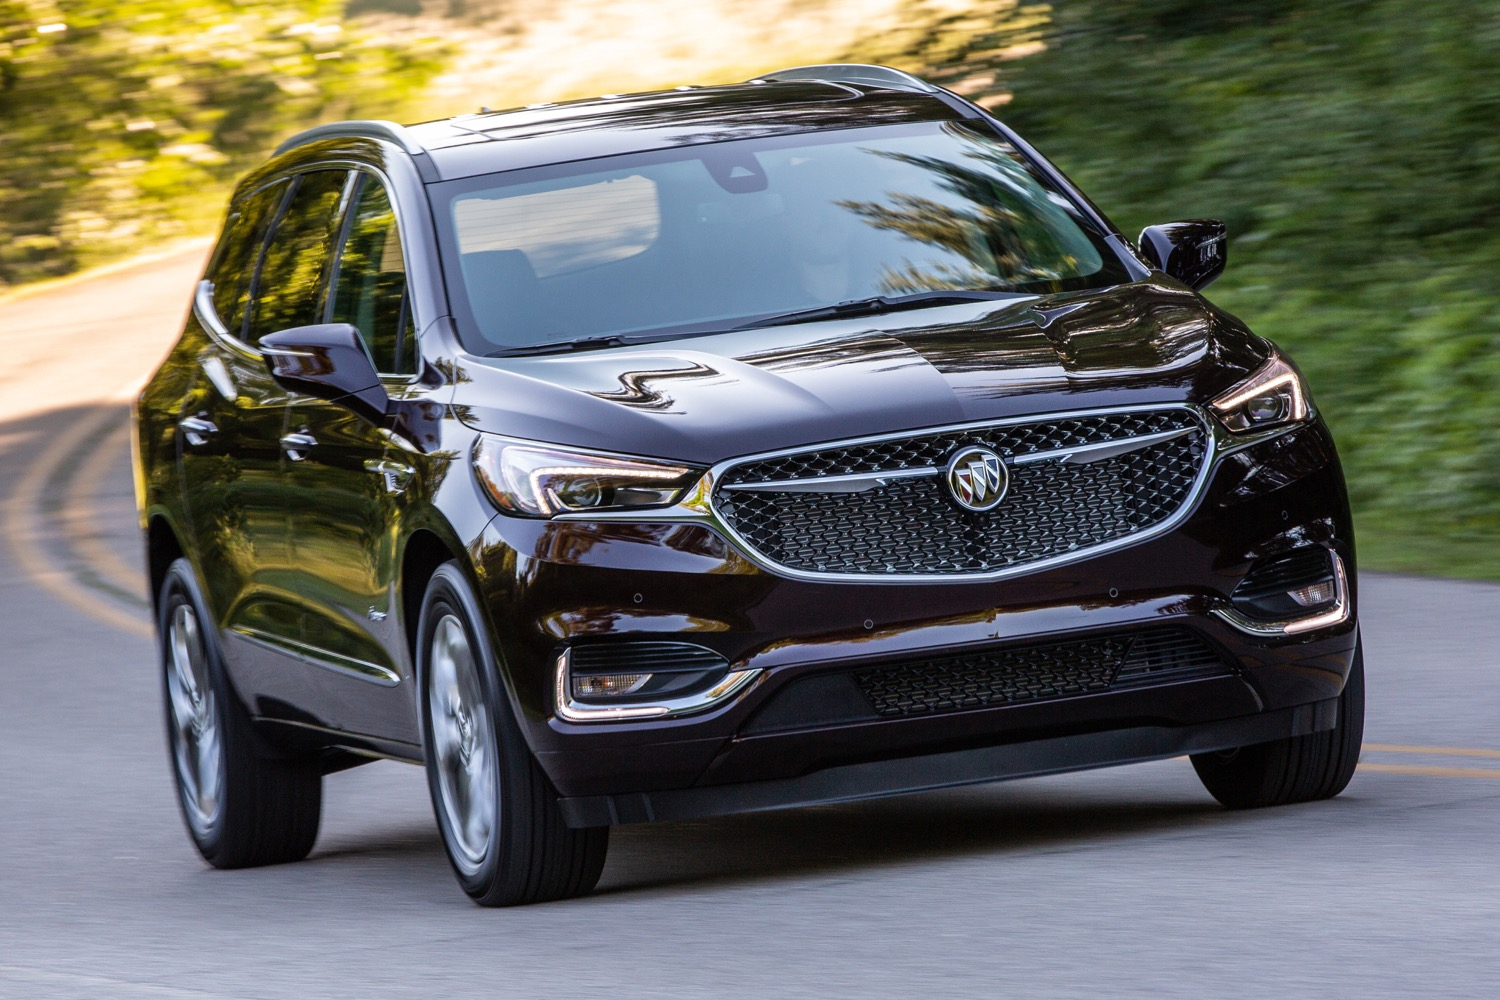 All The Changes Made To The 2020 Buick Enclave | Gm Authority New 2021 Buick Enclave Engine, Navigation, Navigation System